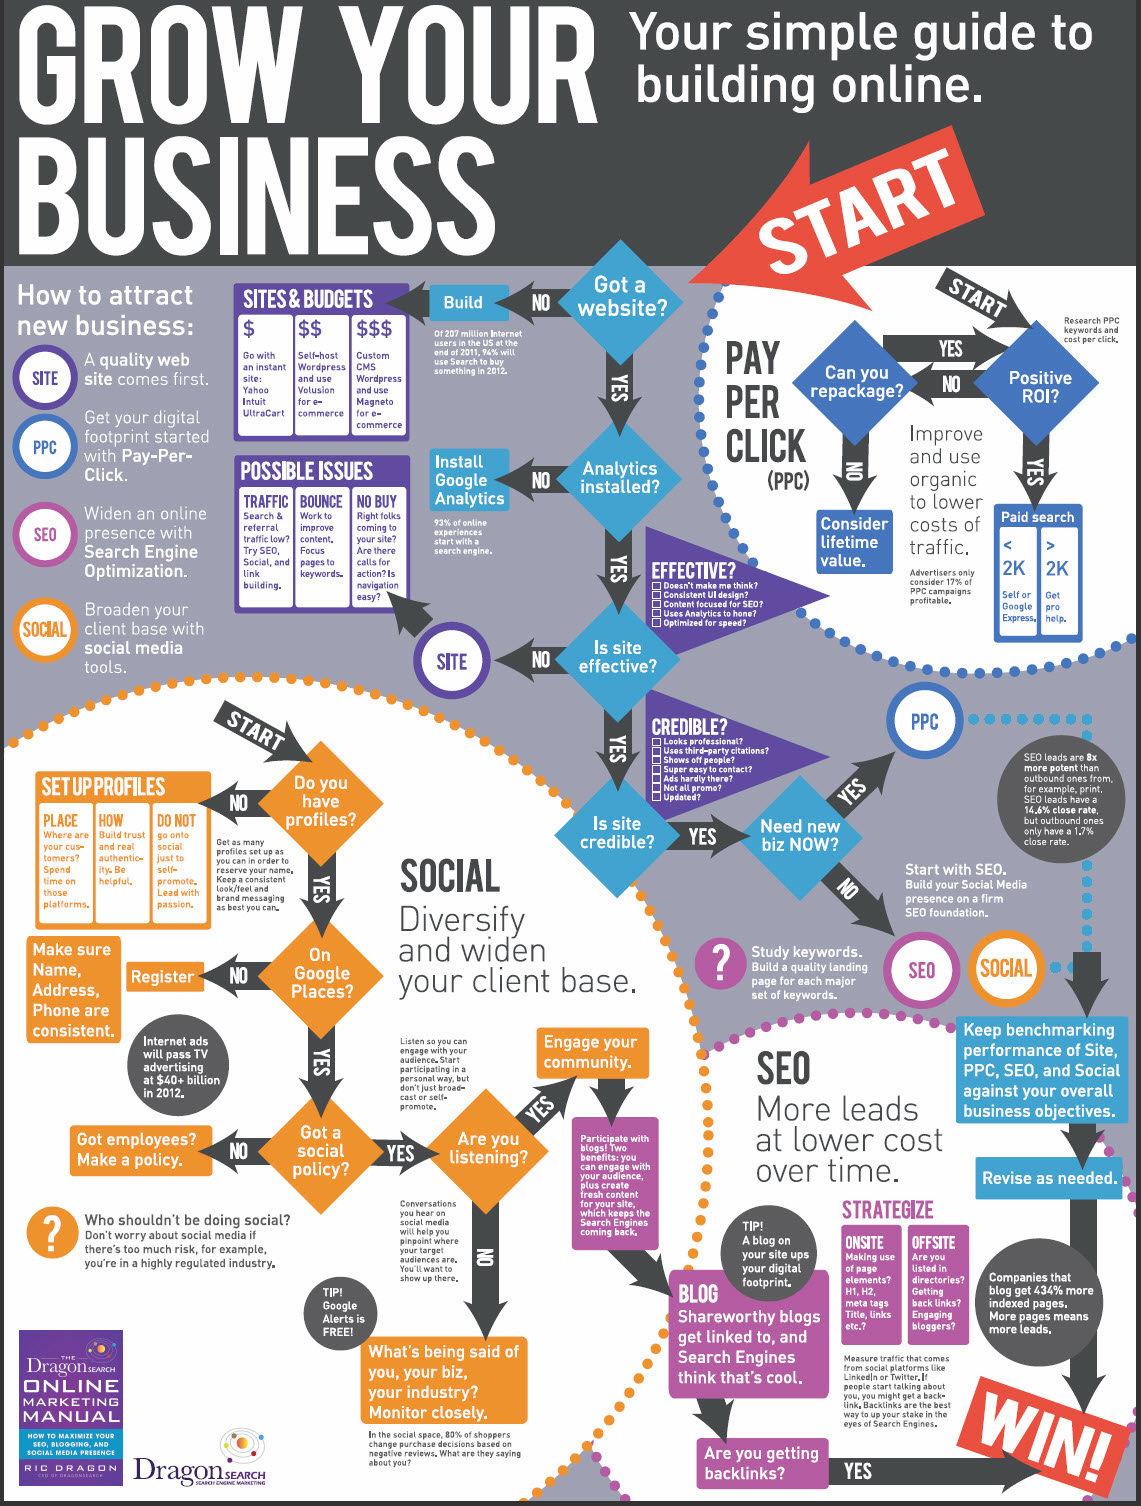 Infographic showing how to grow your business